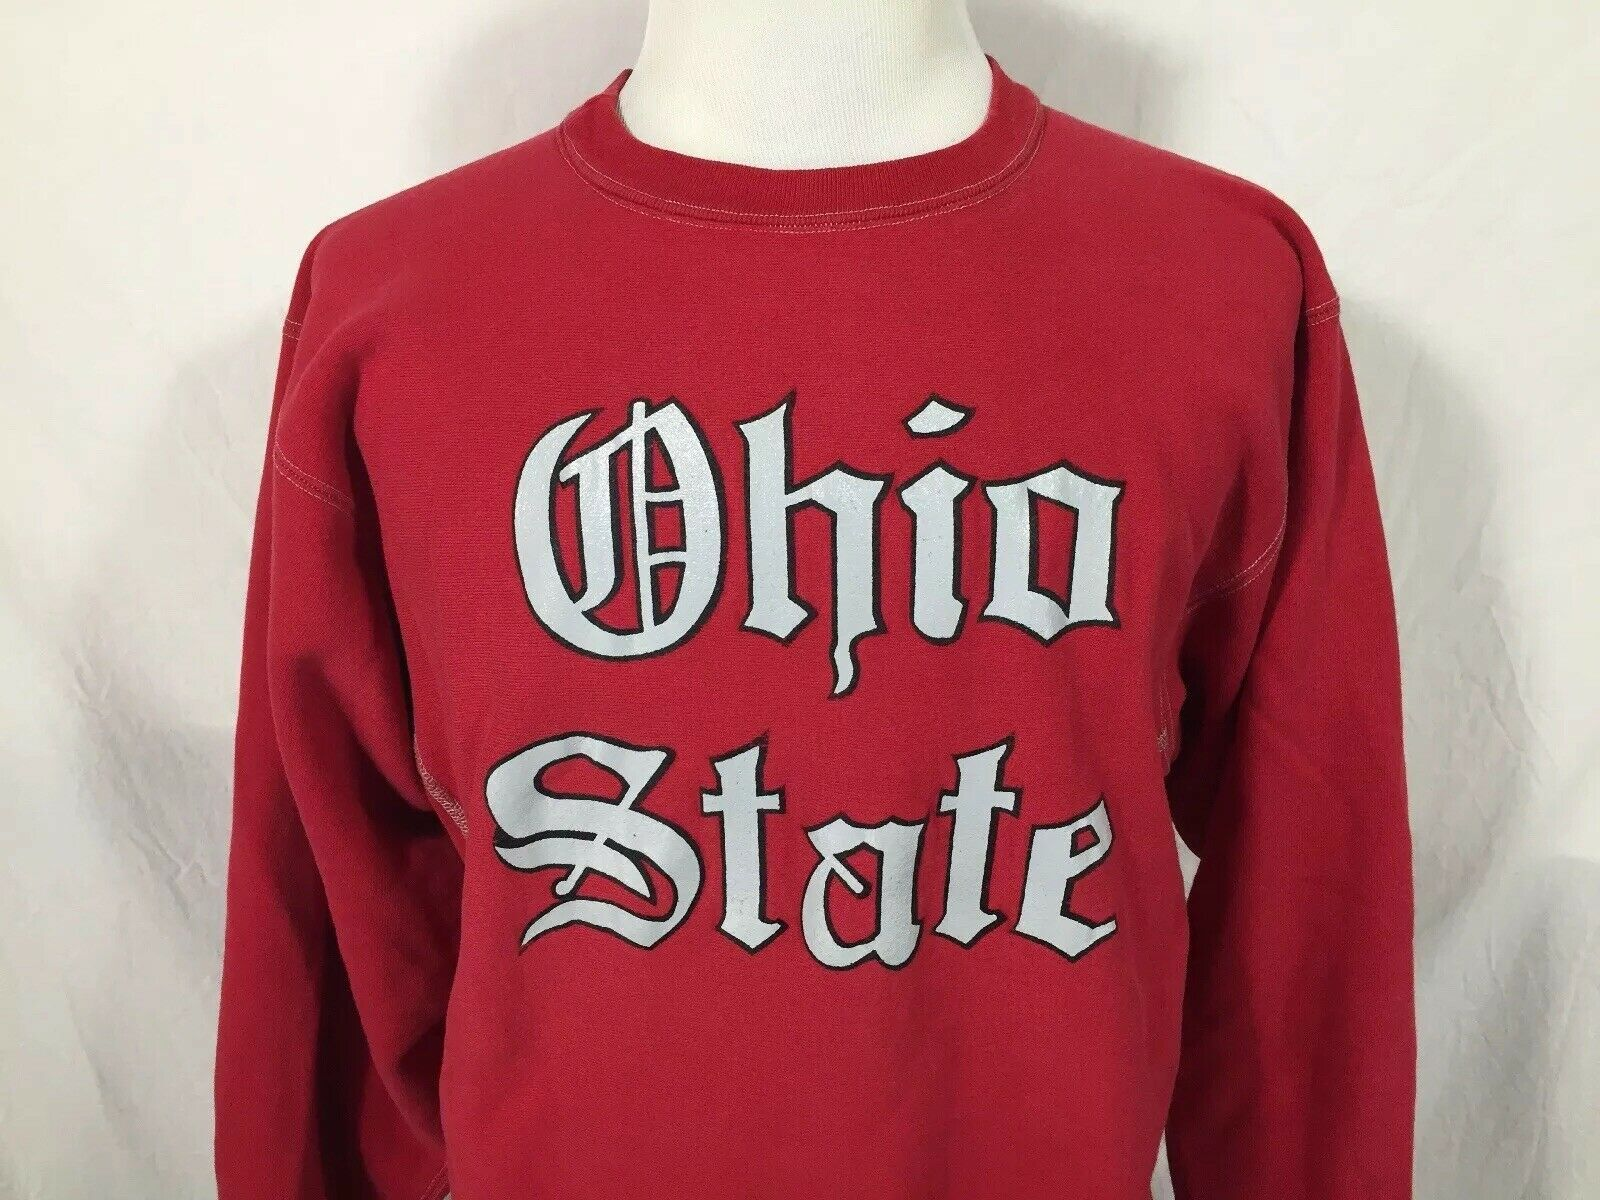 Ohio State University Buckeyes Adult Large Red Sweatshirt Champion Vintage 1990s